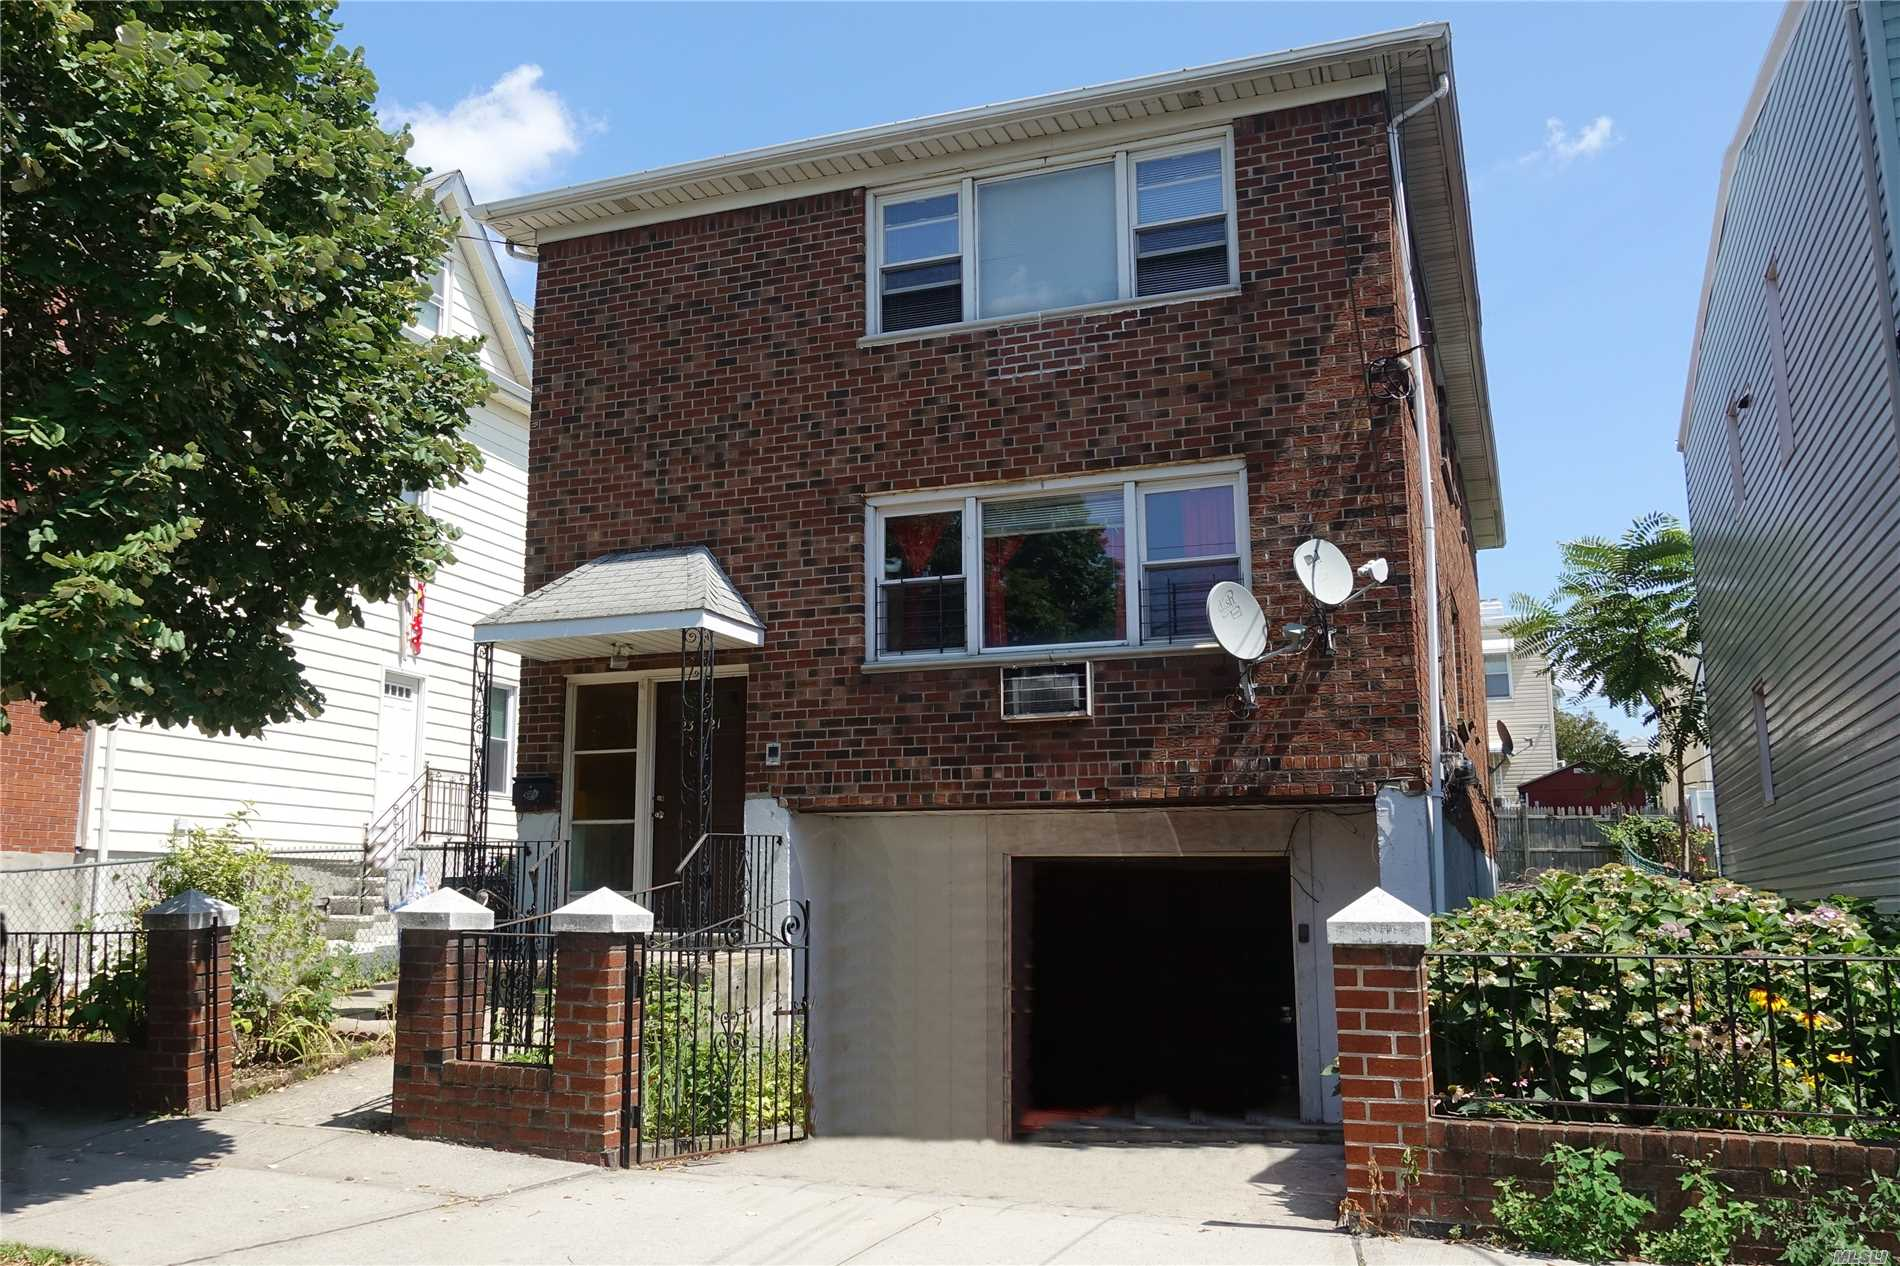 Good Opportunity To Get A Beautiful Detached 2 Family Property Generating Good Rental Income In Heart Of College Point!